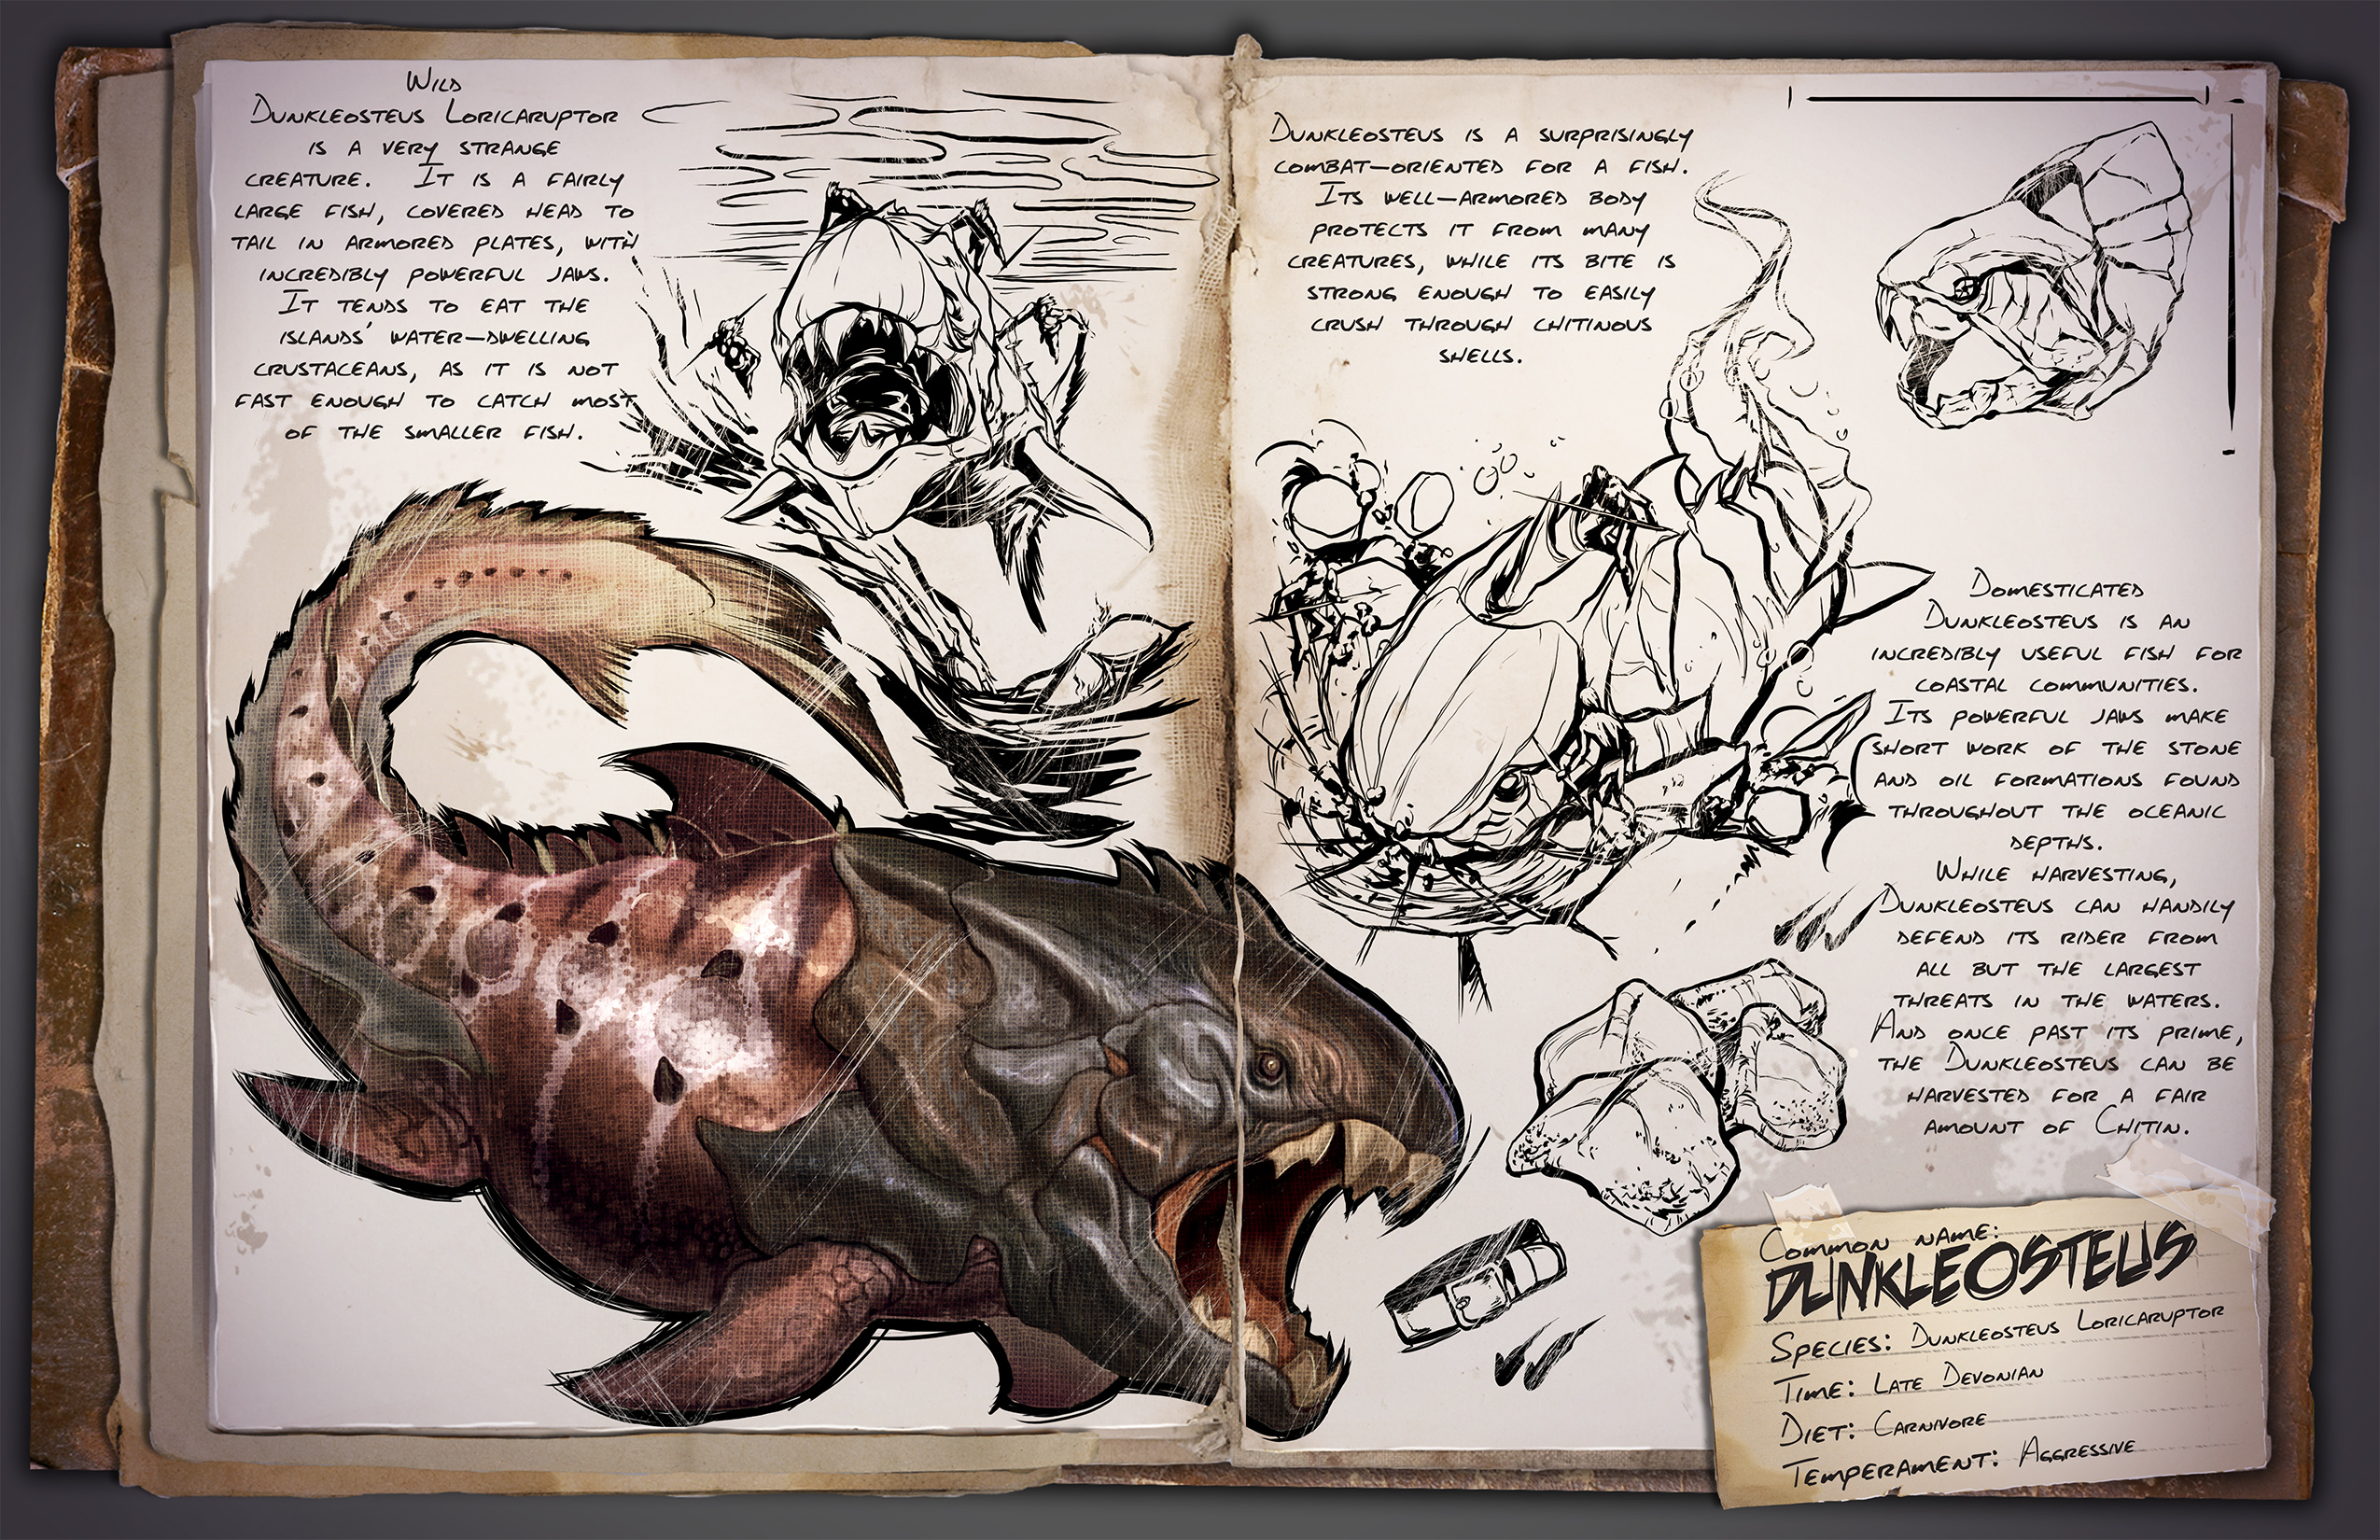 Ark survival evolved patch notes - News Image